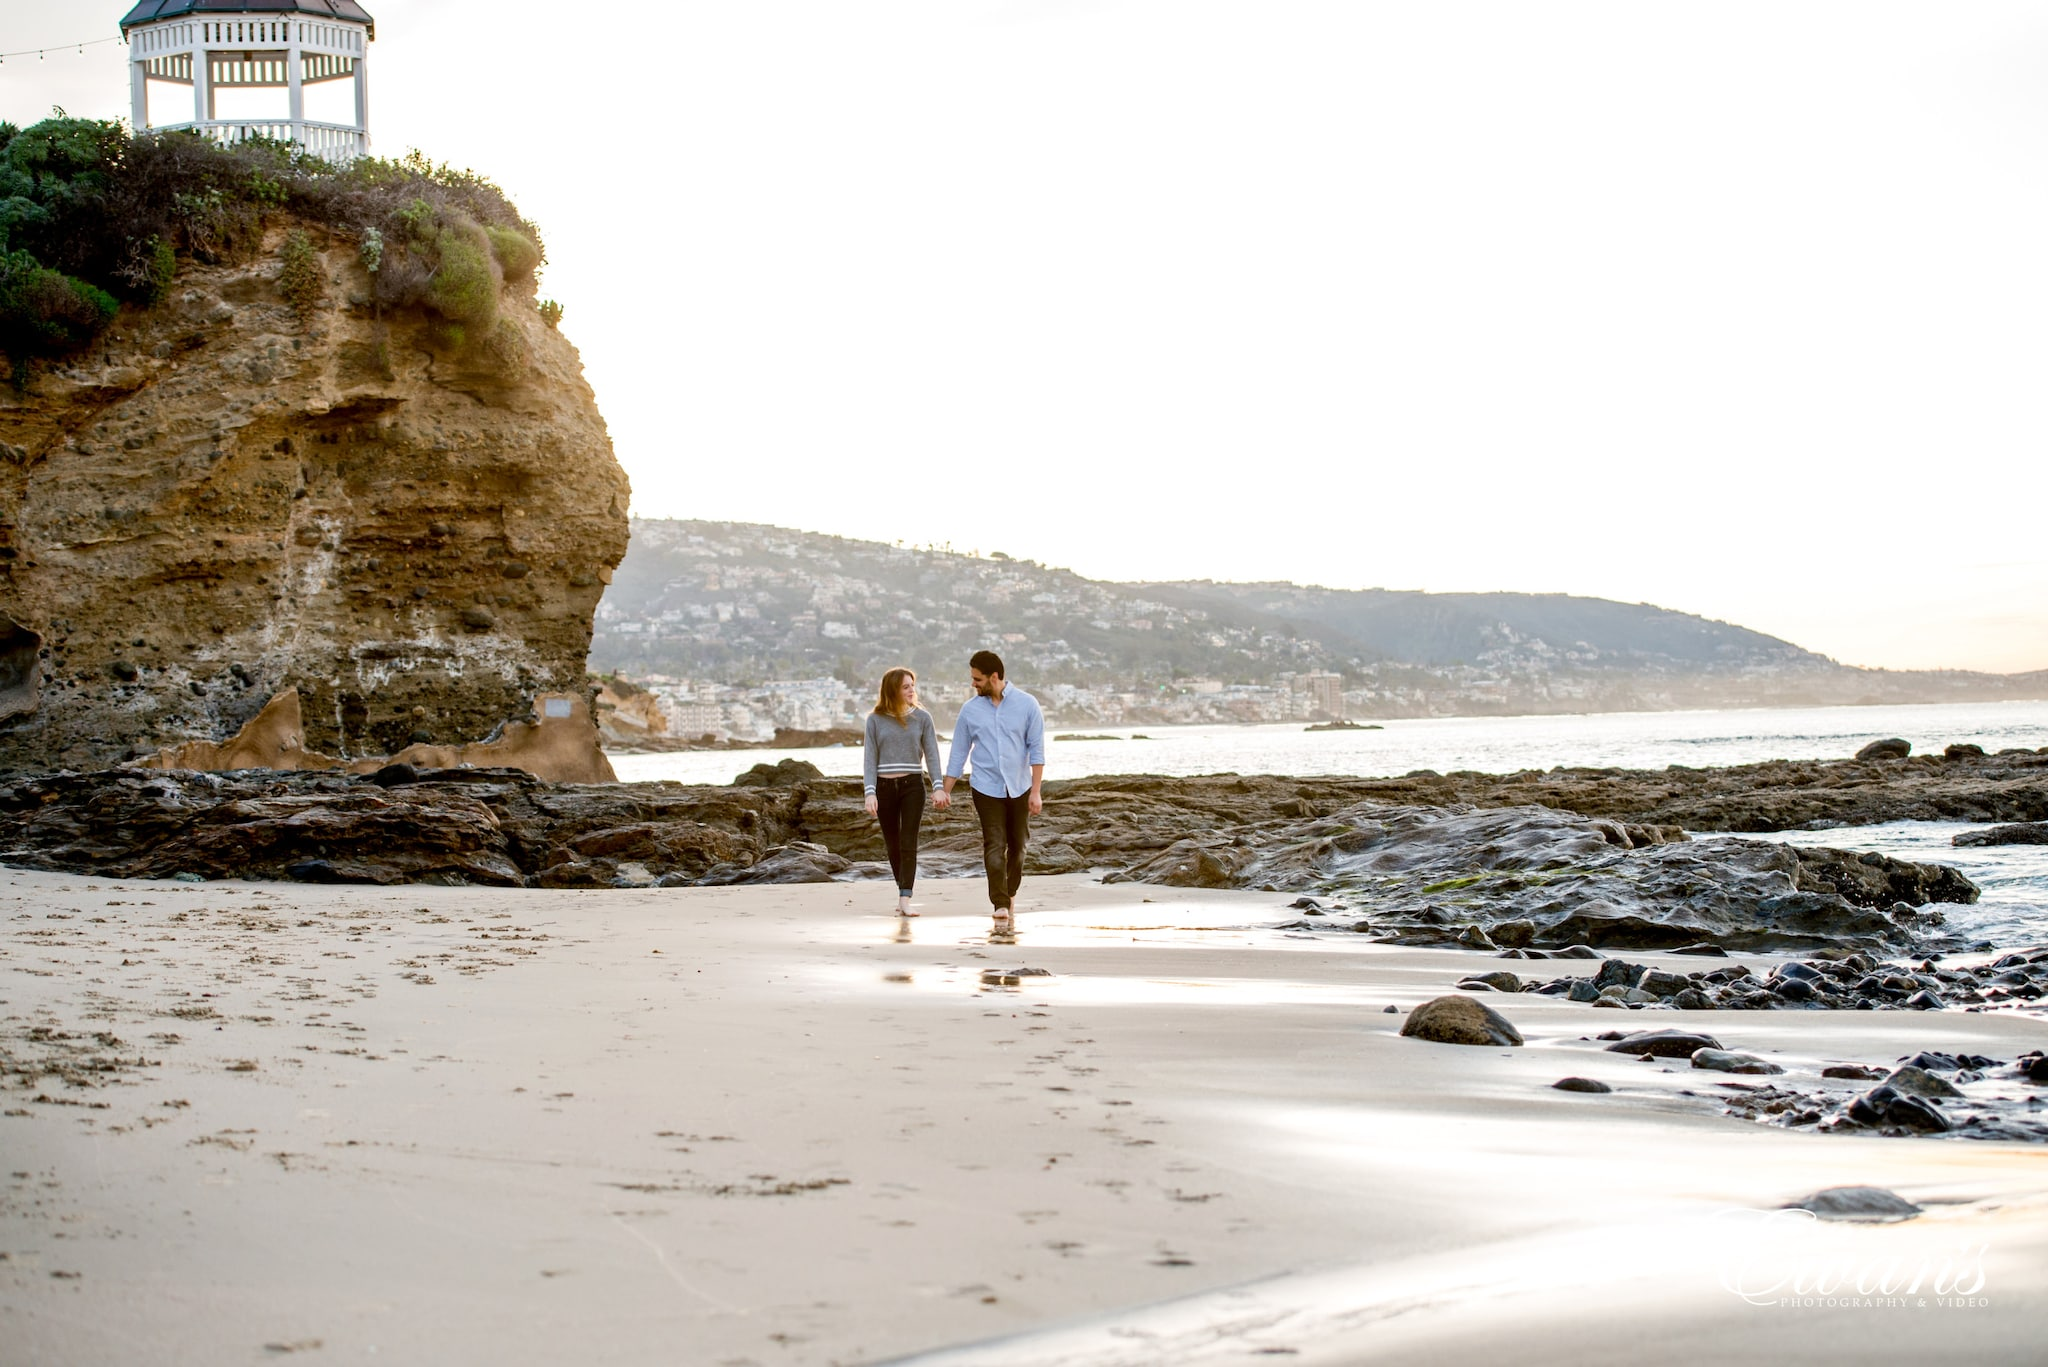 couple walking on beach during daytime